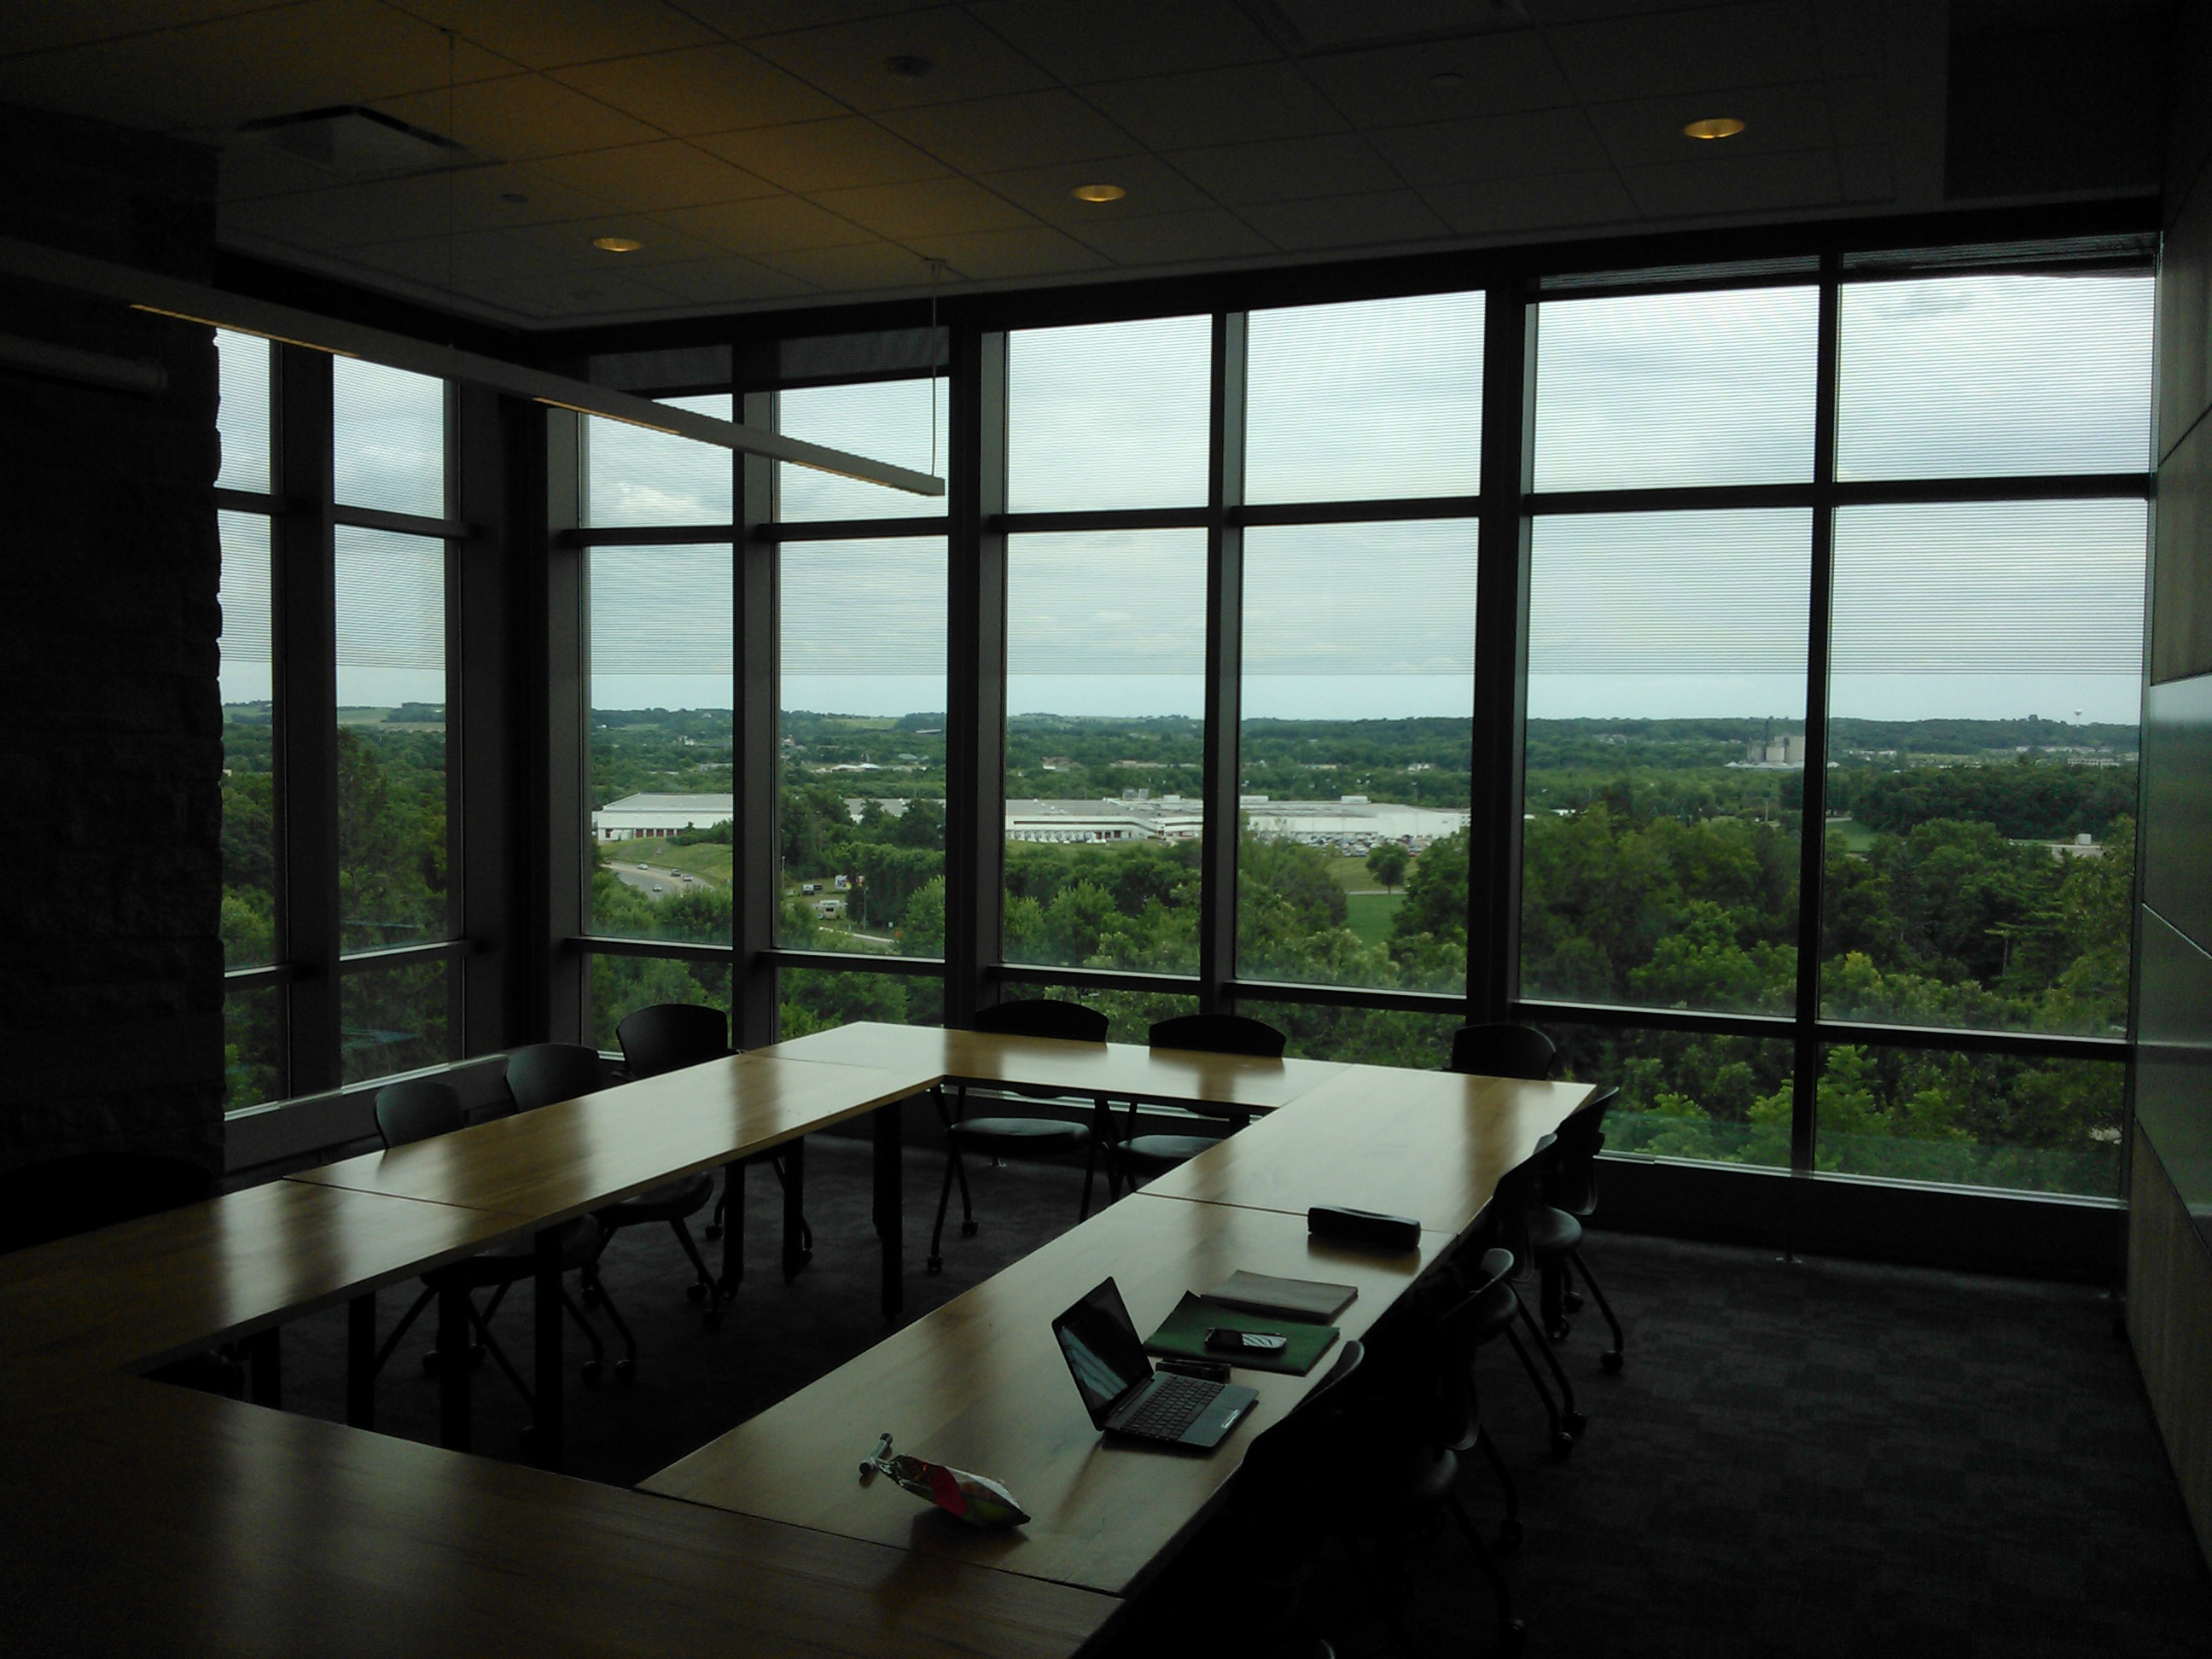 View From Regents Hall Classroom - St. Olaf College, Northfield, MN (Erik Bergs)